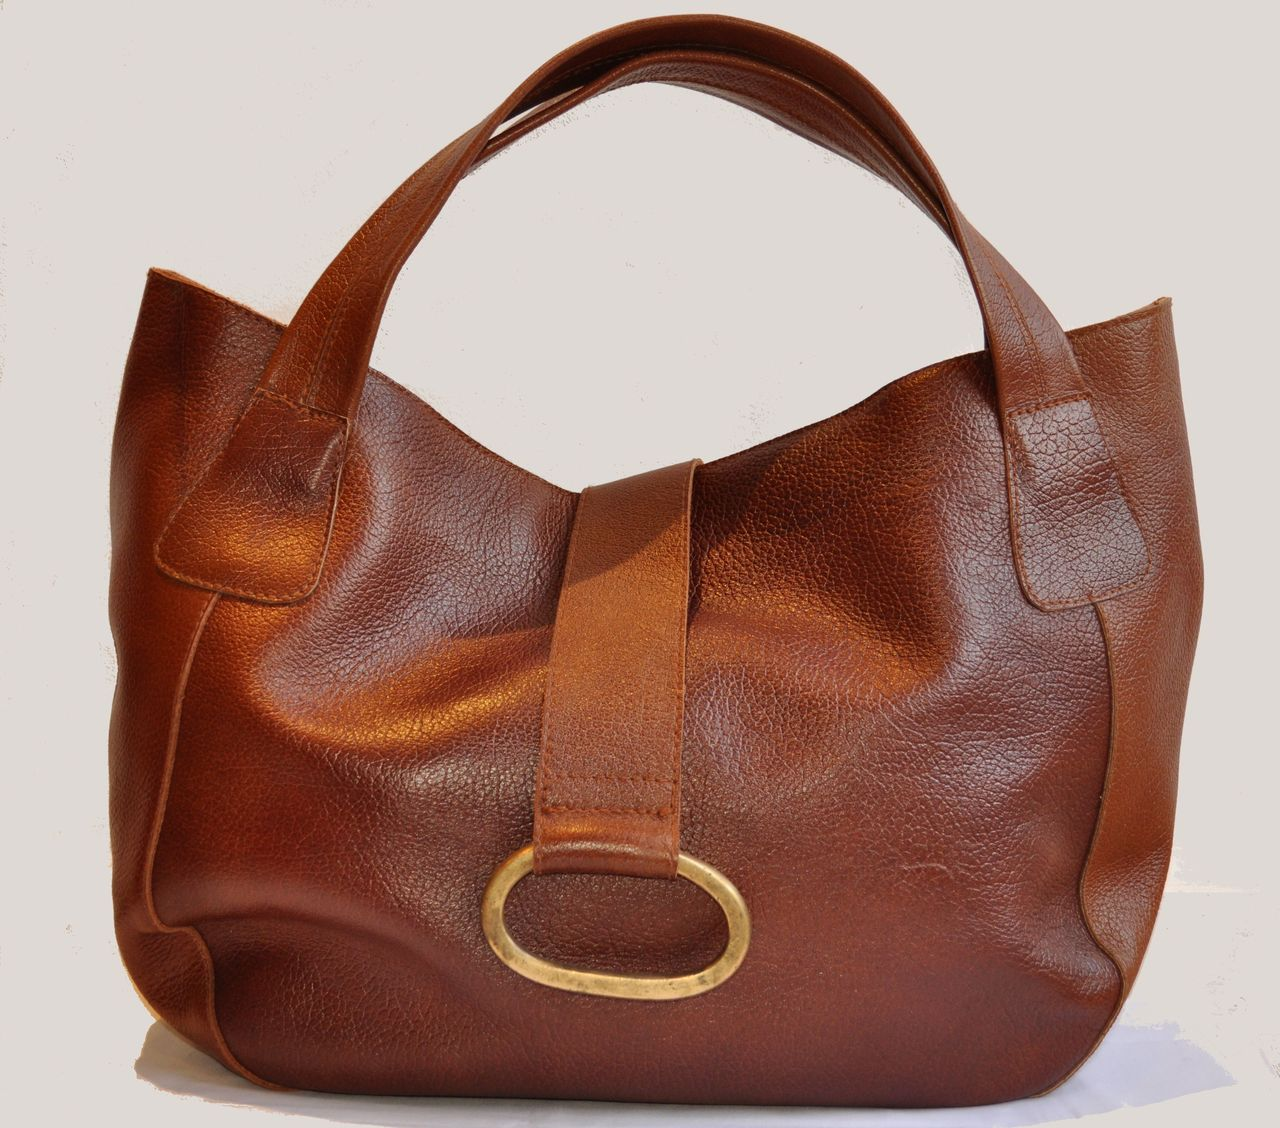 Leather Bag (Study)